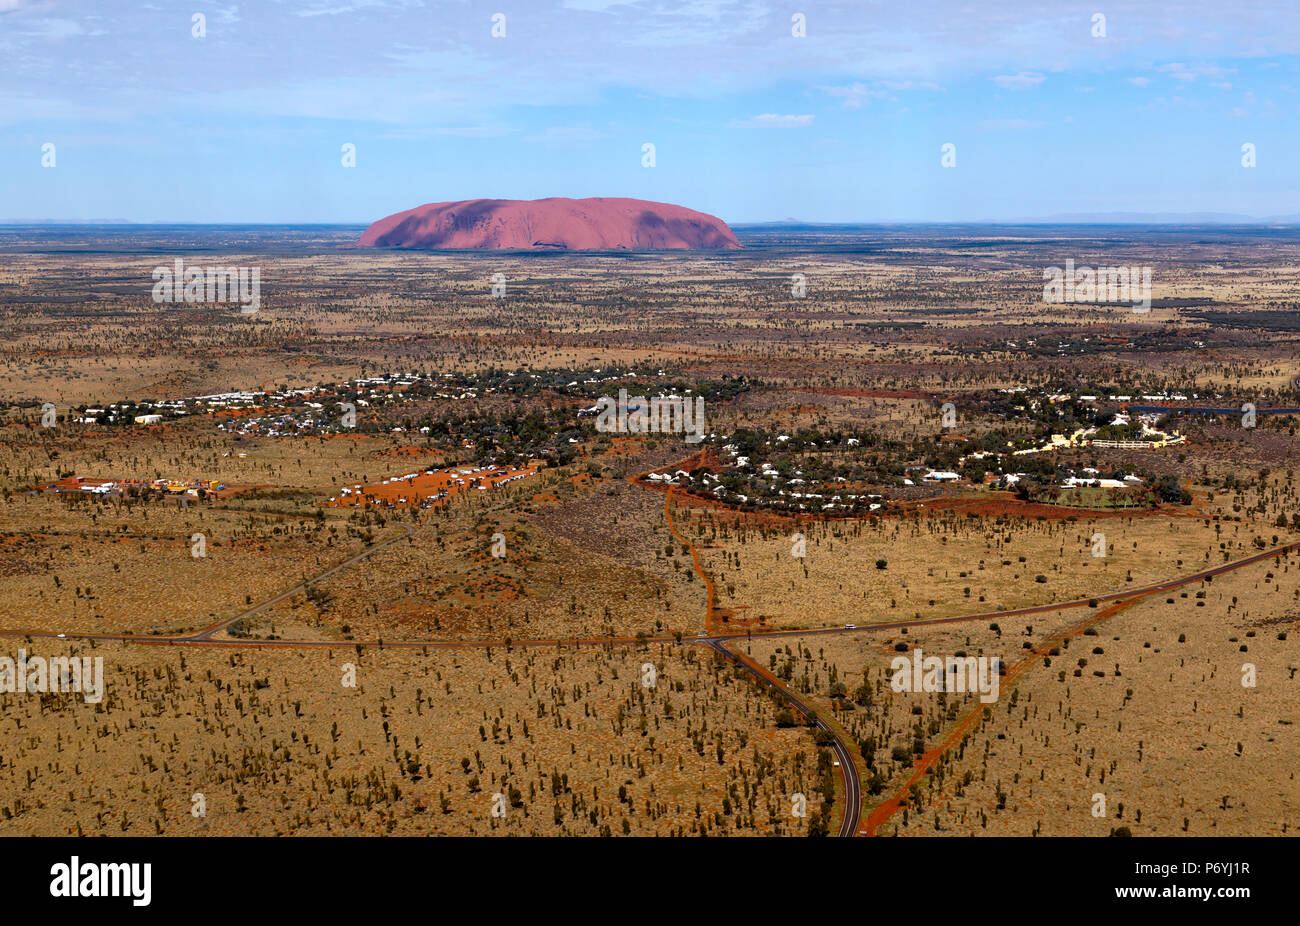 Aerial view of  the town of Yulara with Uluru in the background - Stock Image